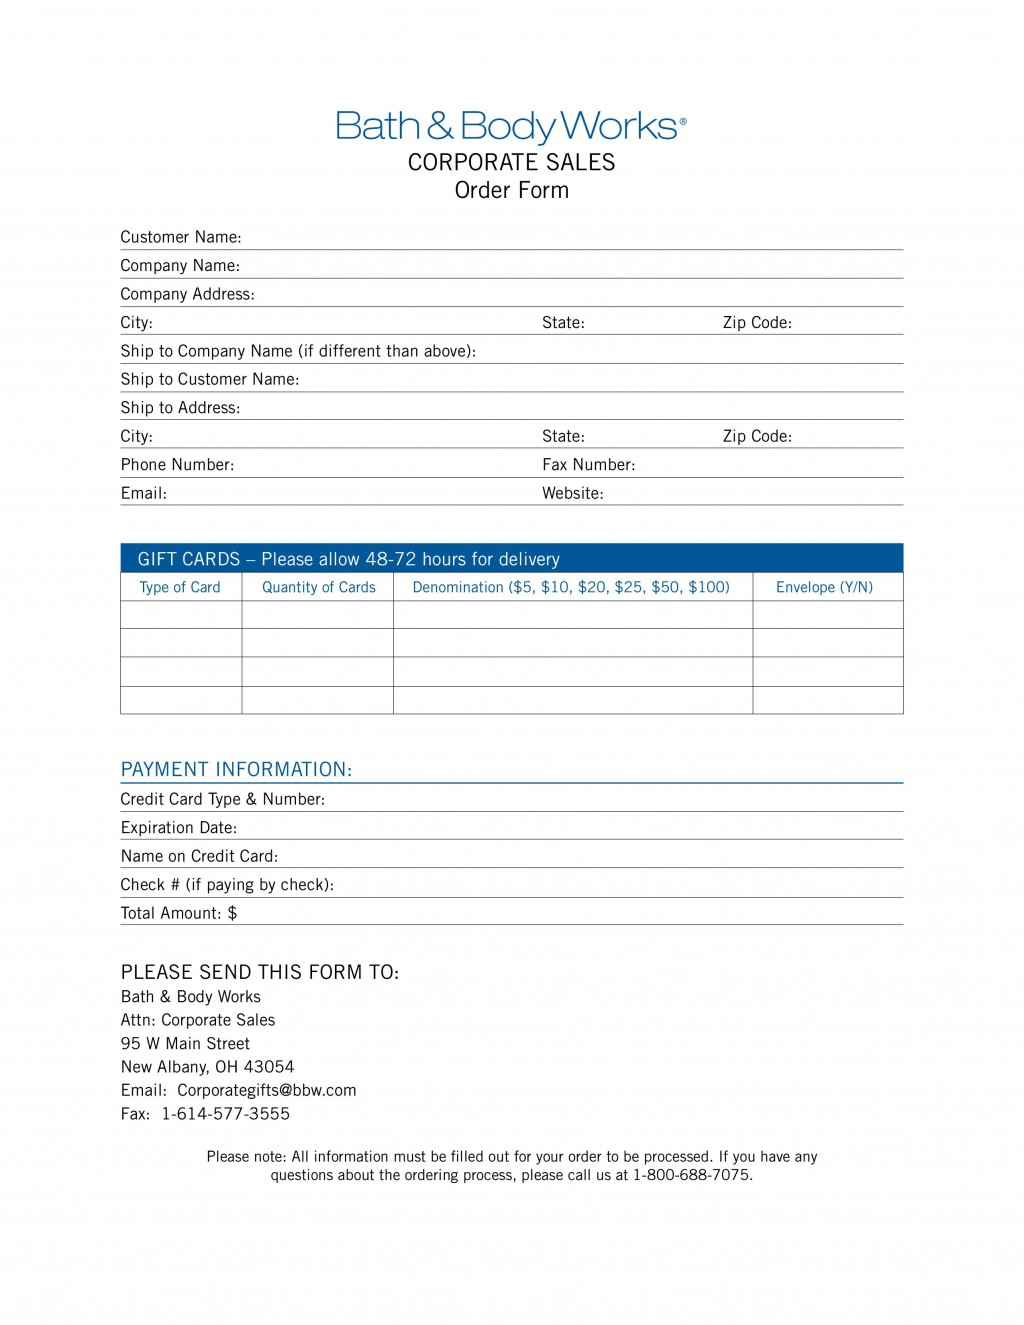 000 Excellent Sale Order Form Template Image  Templates Excel Word Free OnlineLarge